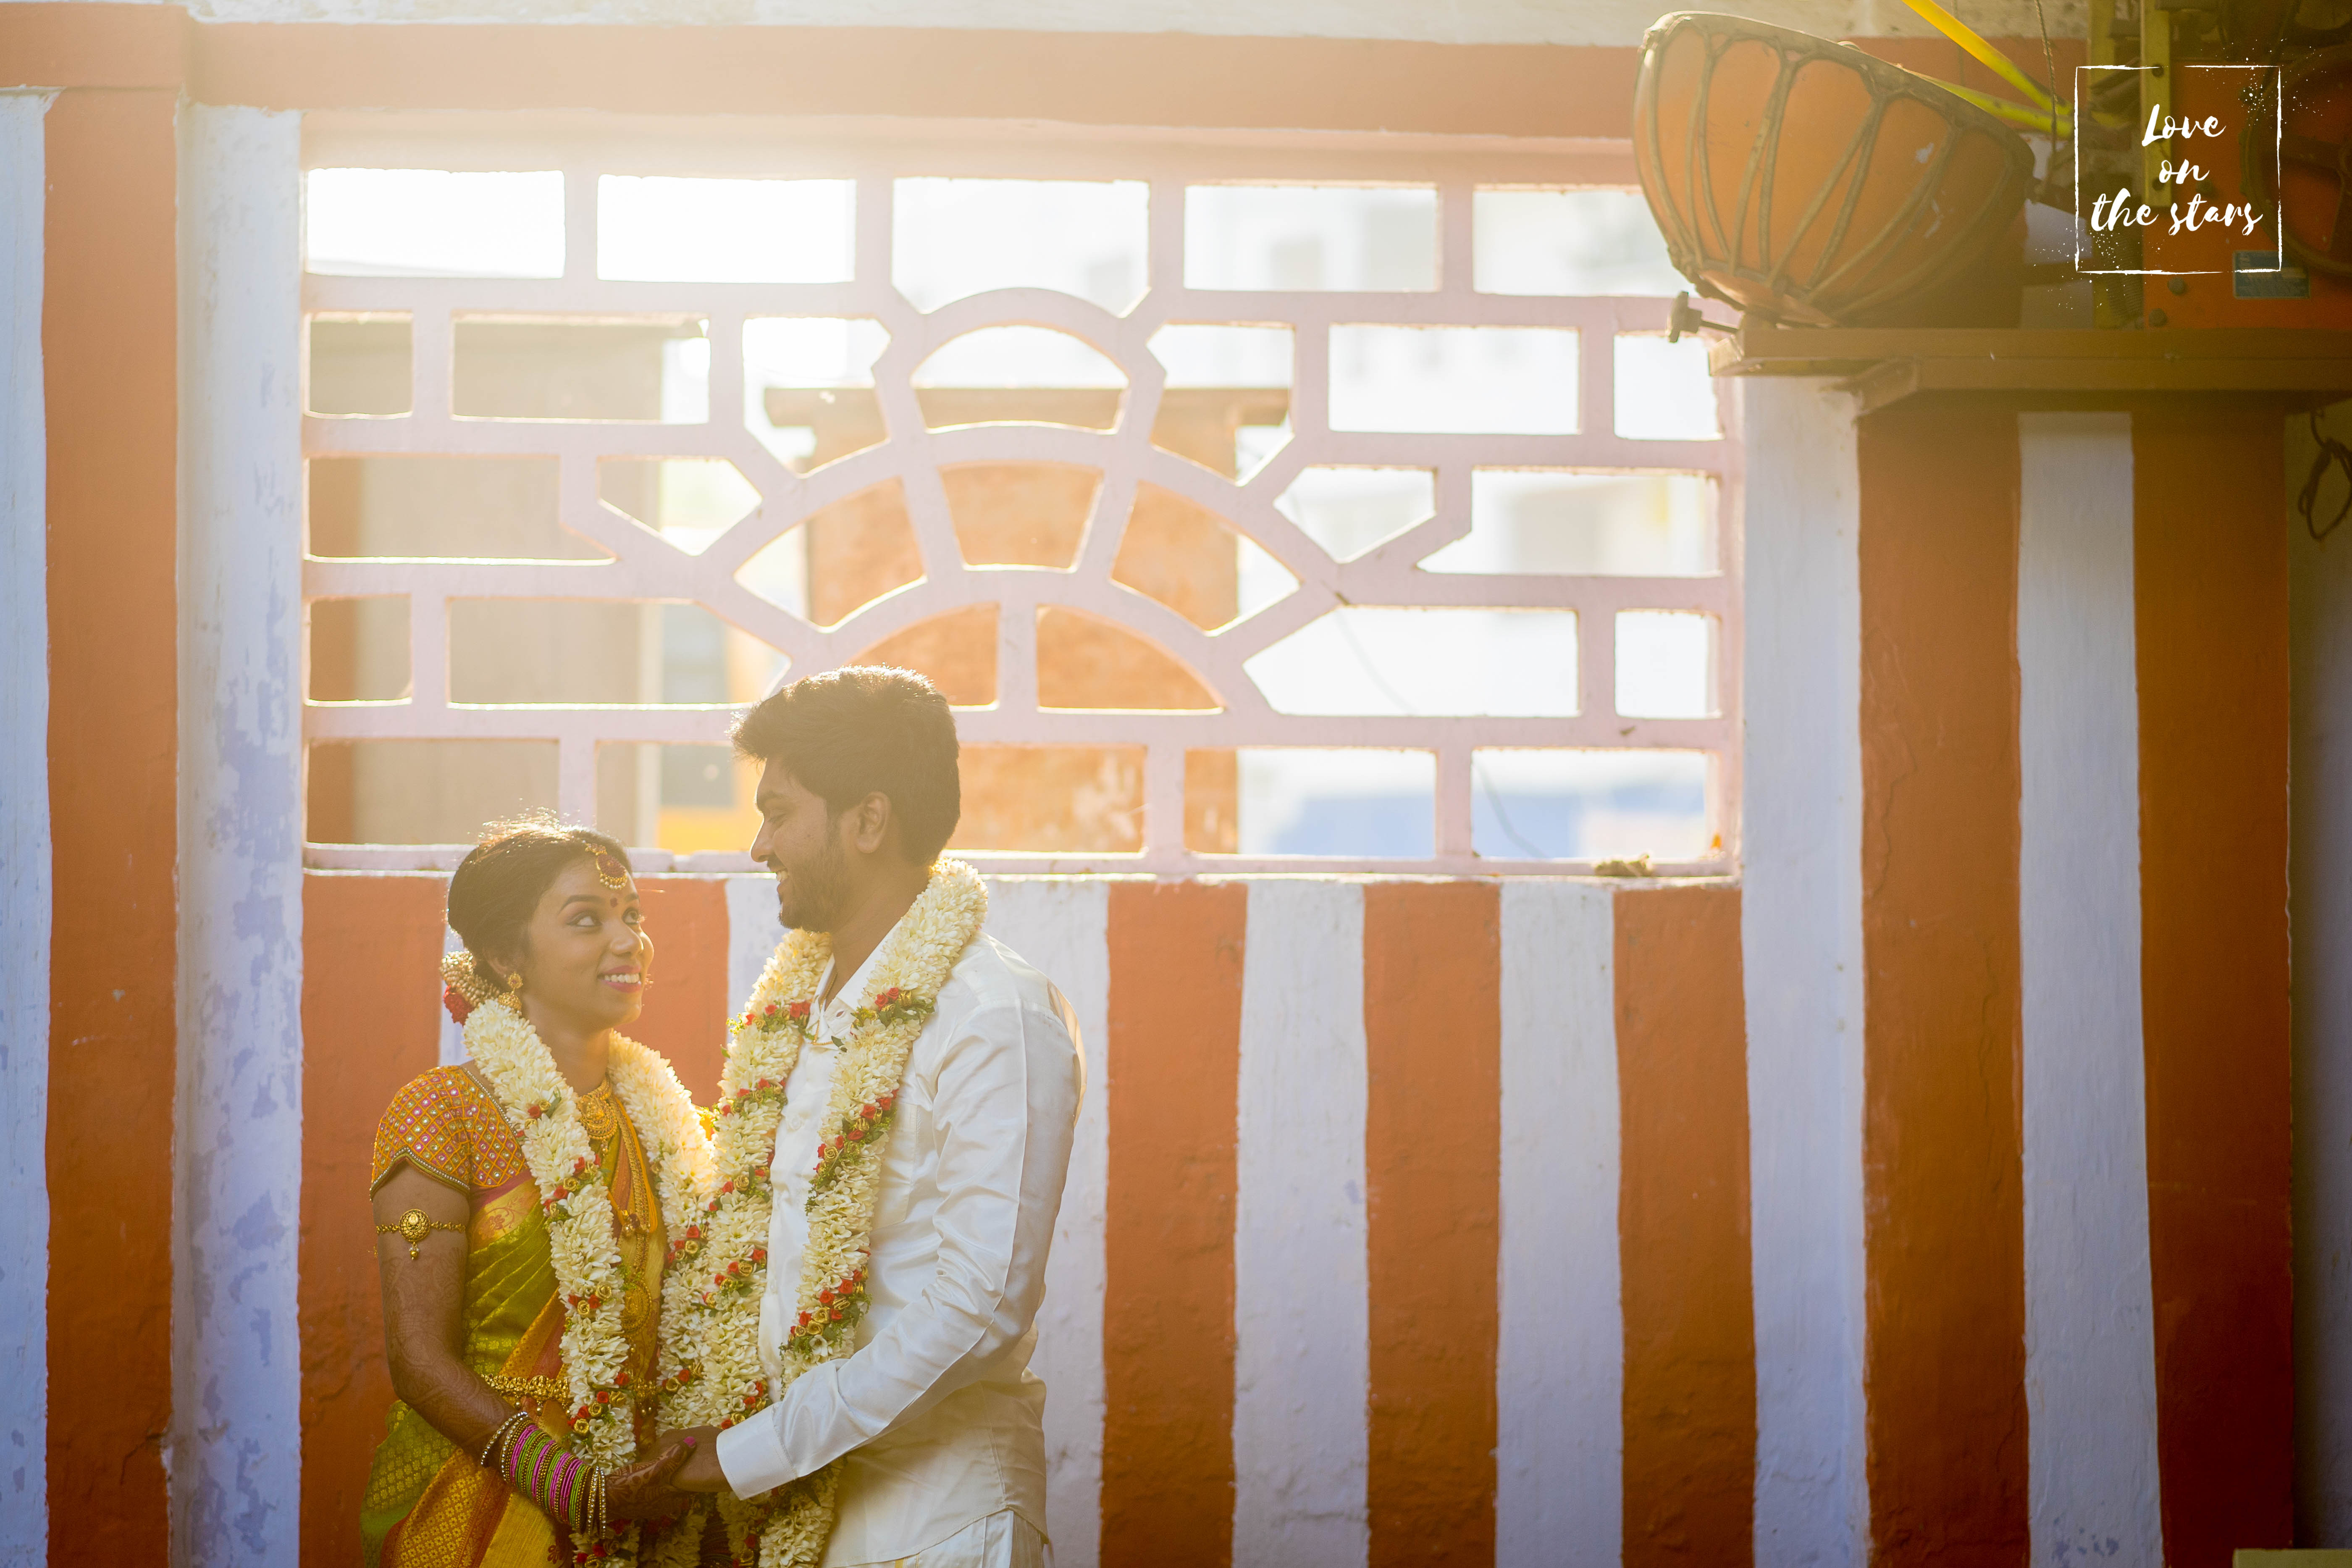 Sumesh & Pradeepa's wedding